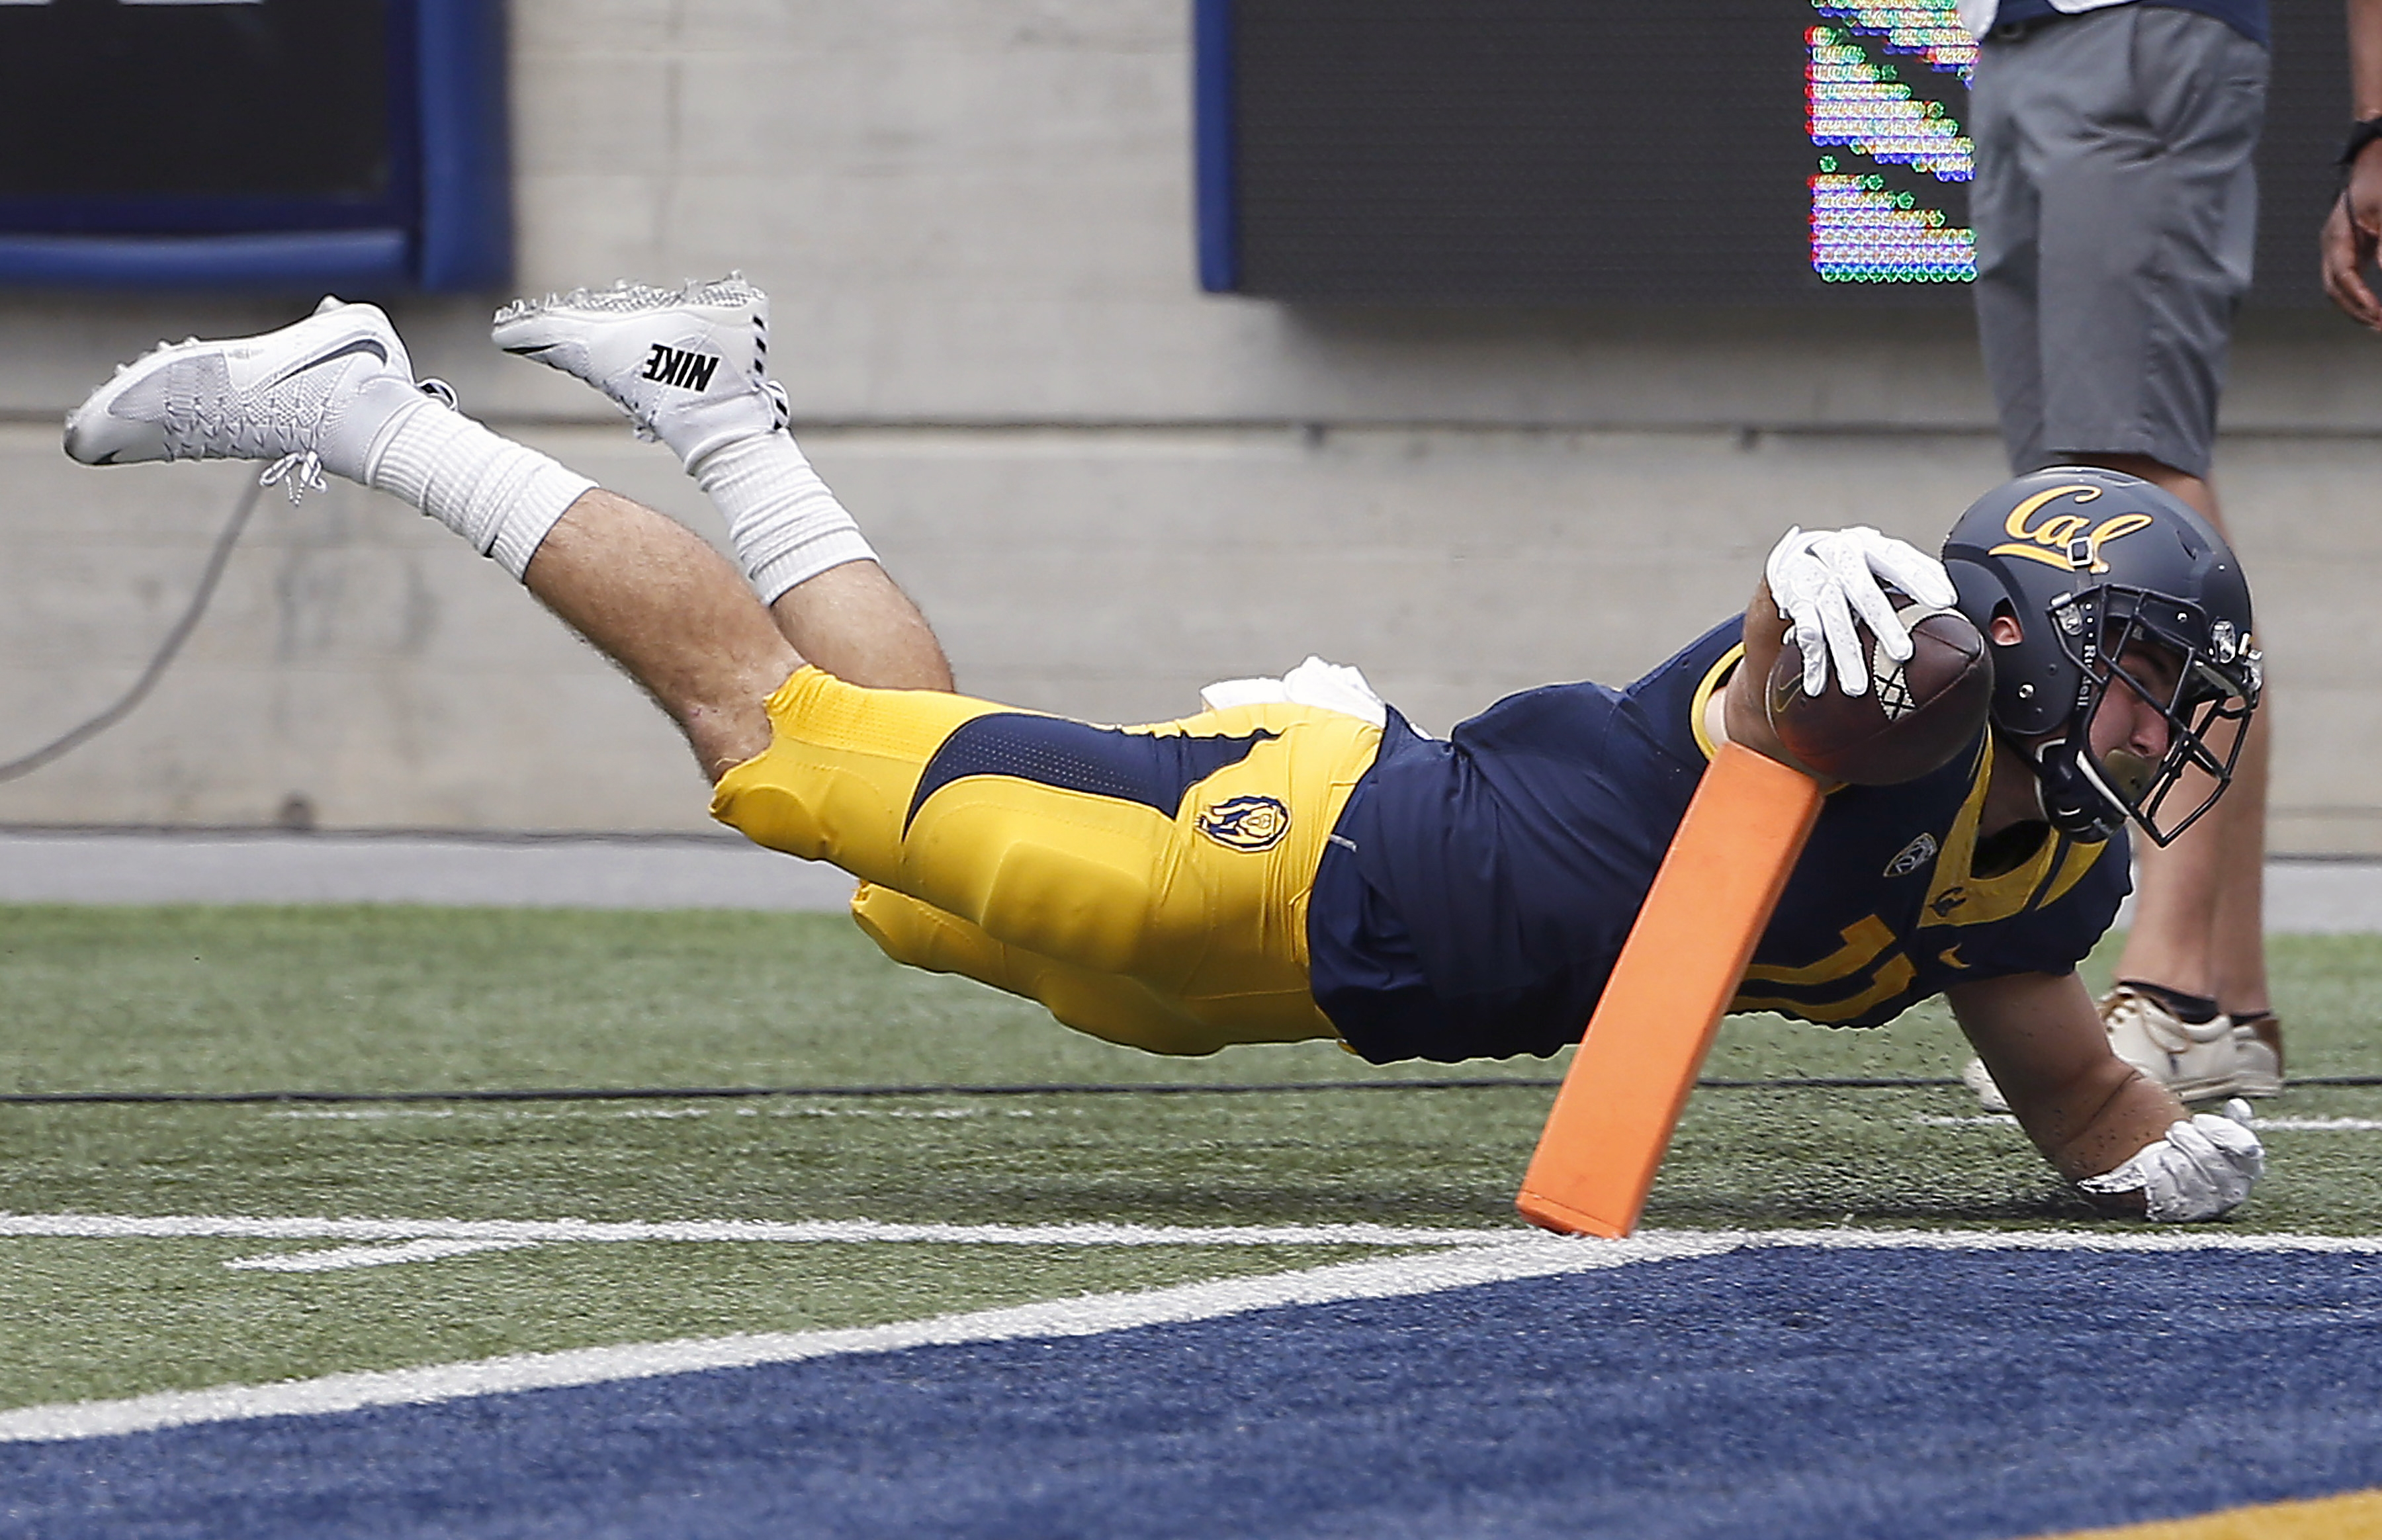 California tight end Raymond Hudson (11) dives short of the end zone against San Diego State during the first half of an NCAA college football game Saturday, Sept. 12, 2015, in Berkeley, Calif. (AP Photo/Tony Avelar)